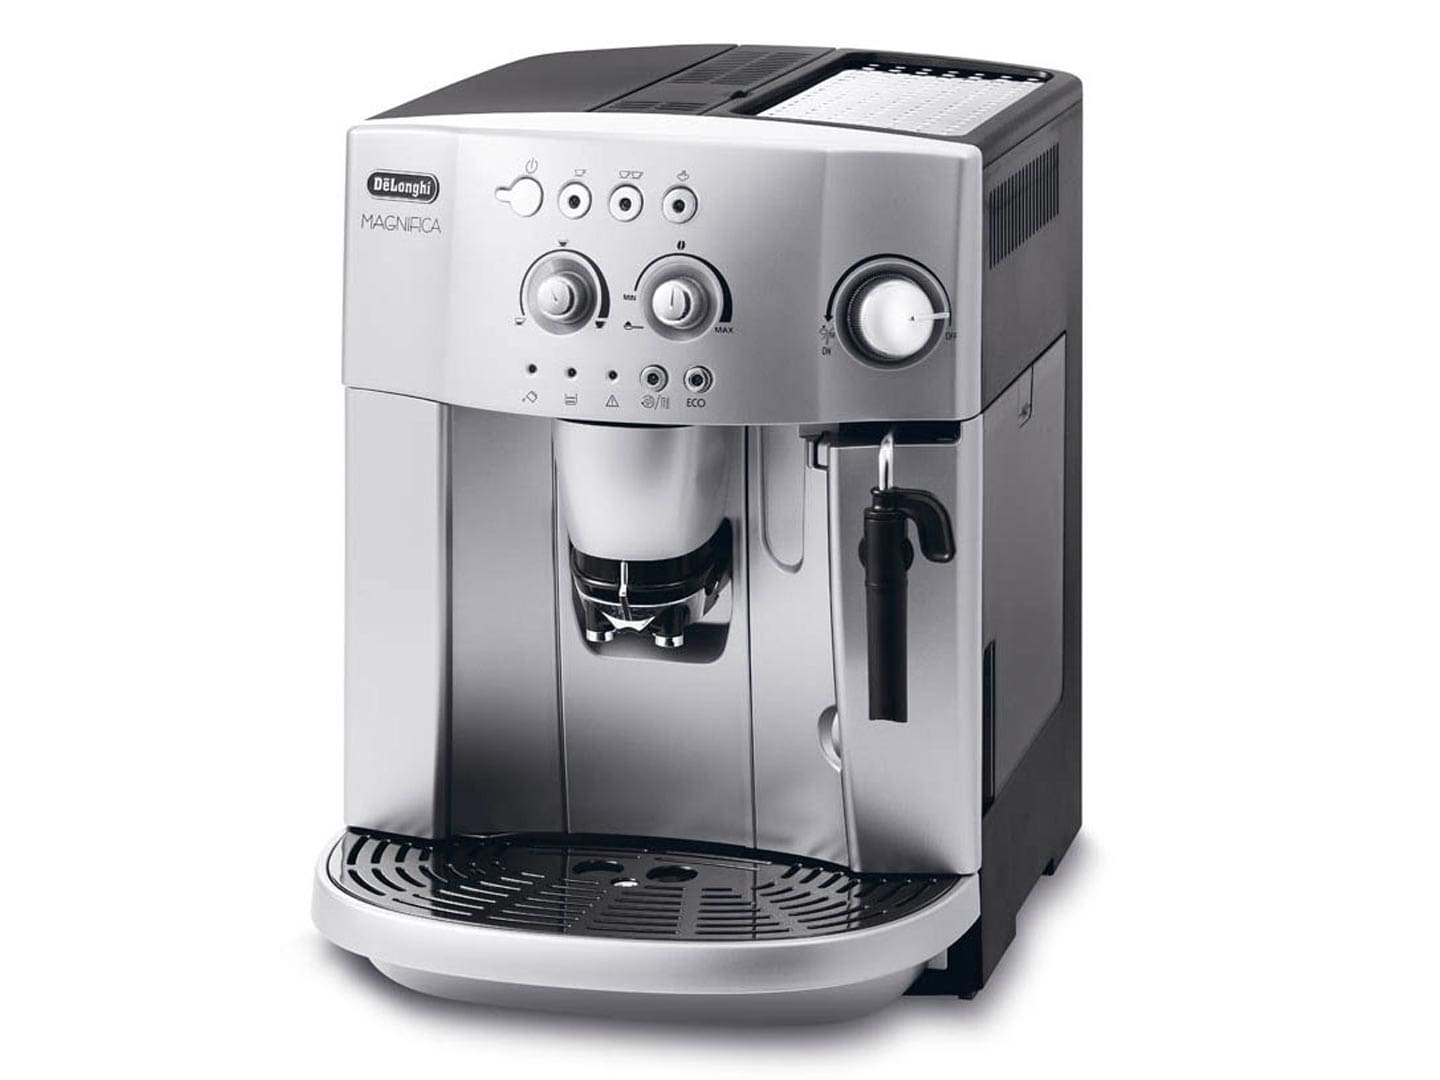 Delonghi magnifica manual